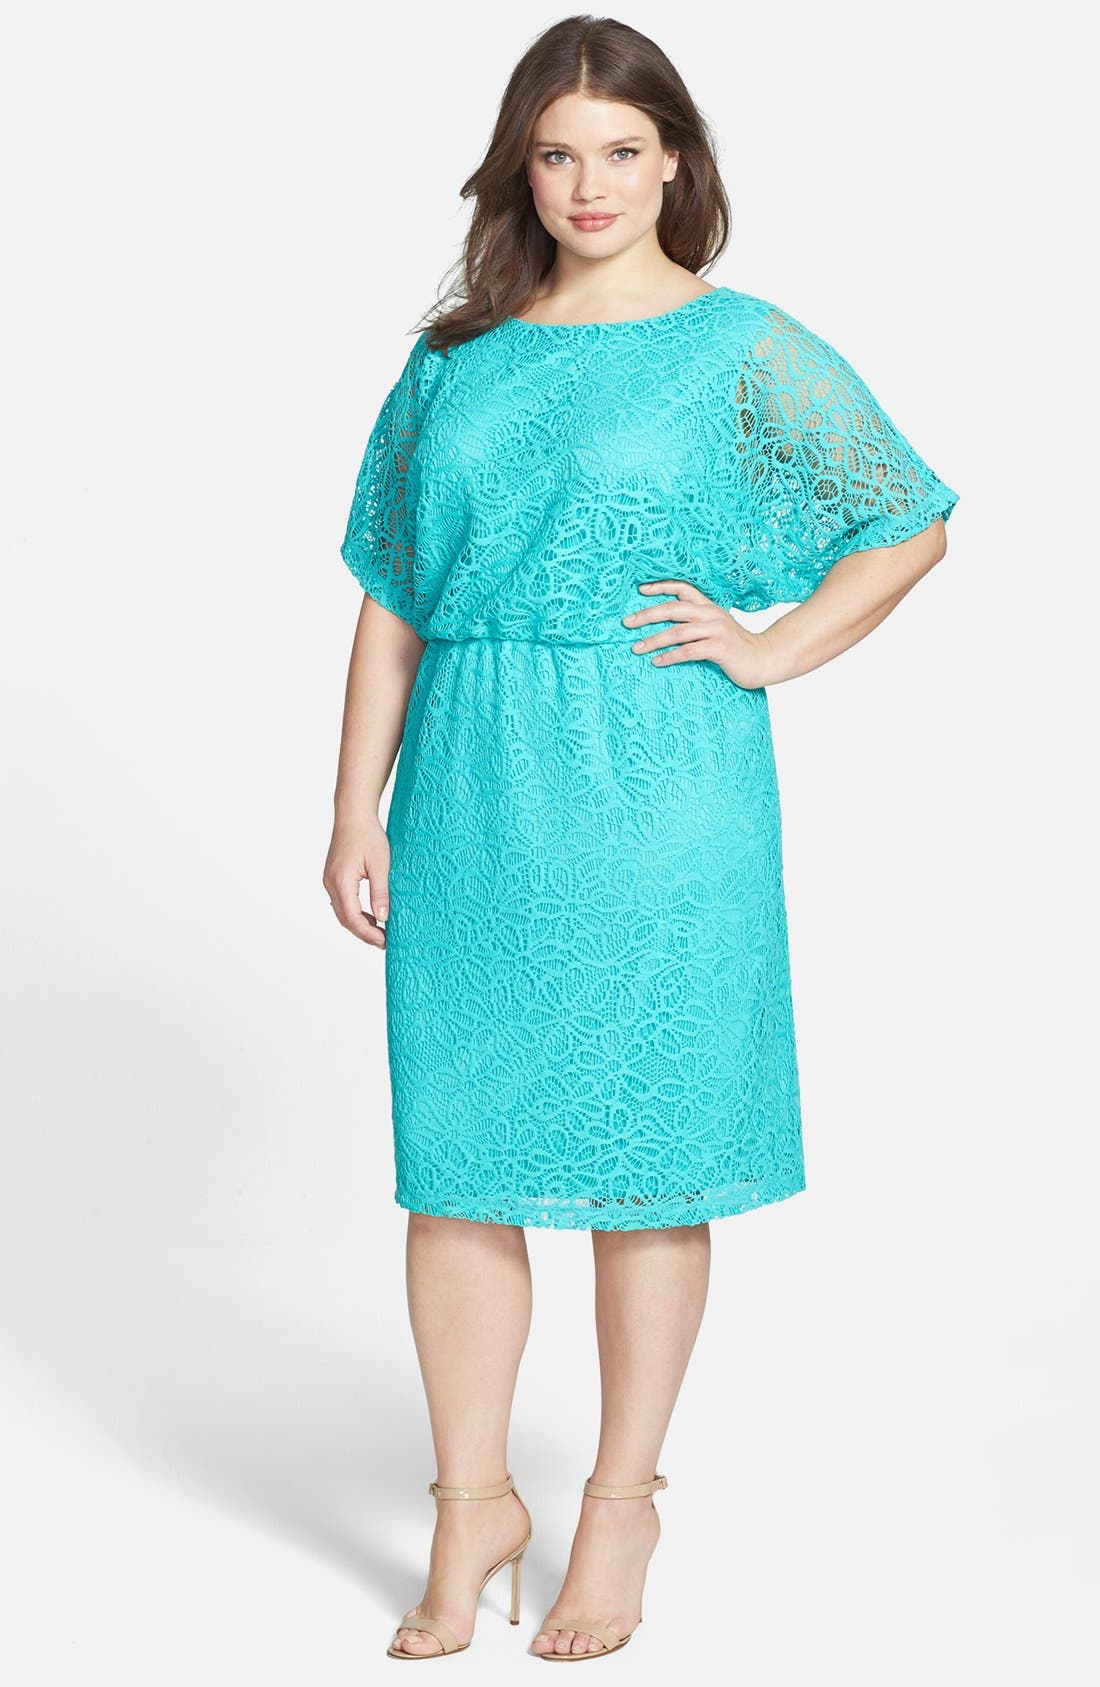 Alternate Image 1 Selected - London Times 'Kimono' Lace Dress (Plus Size)